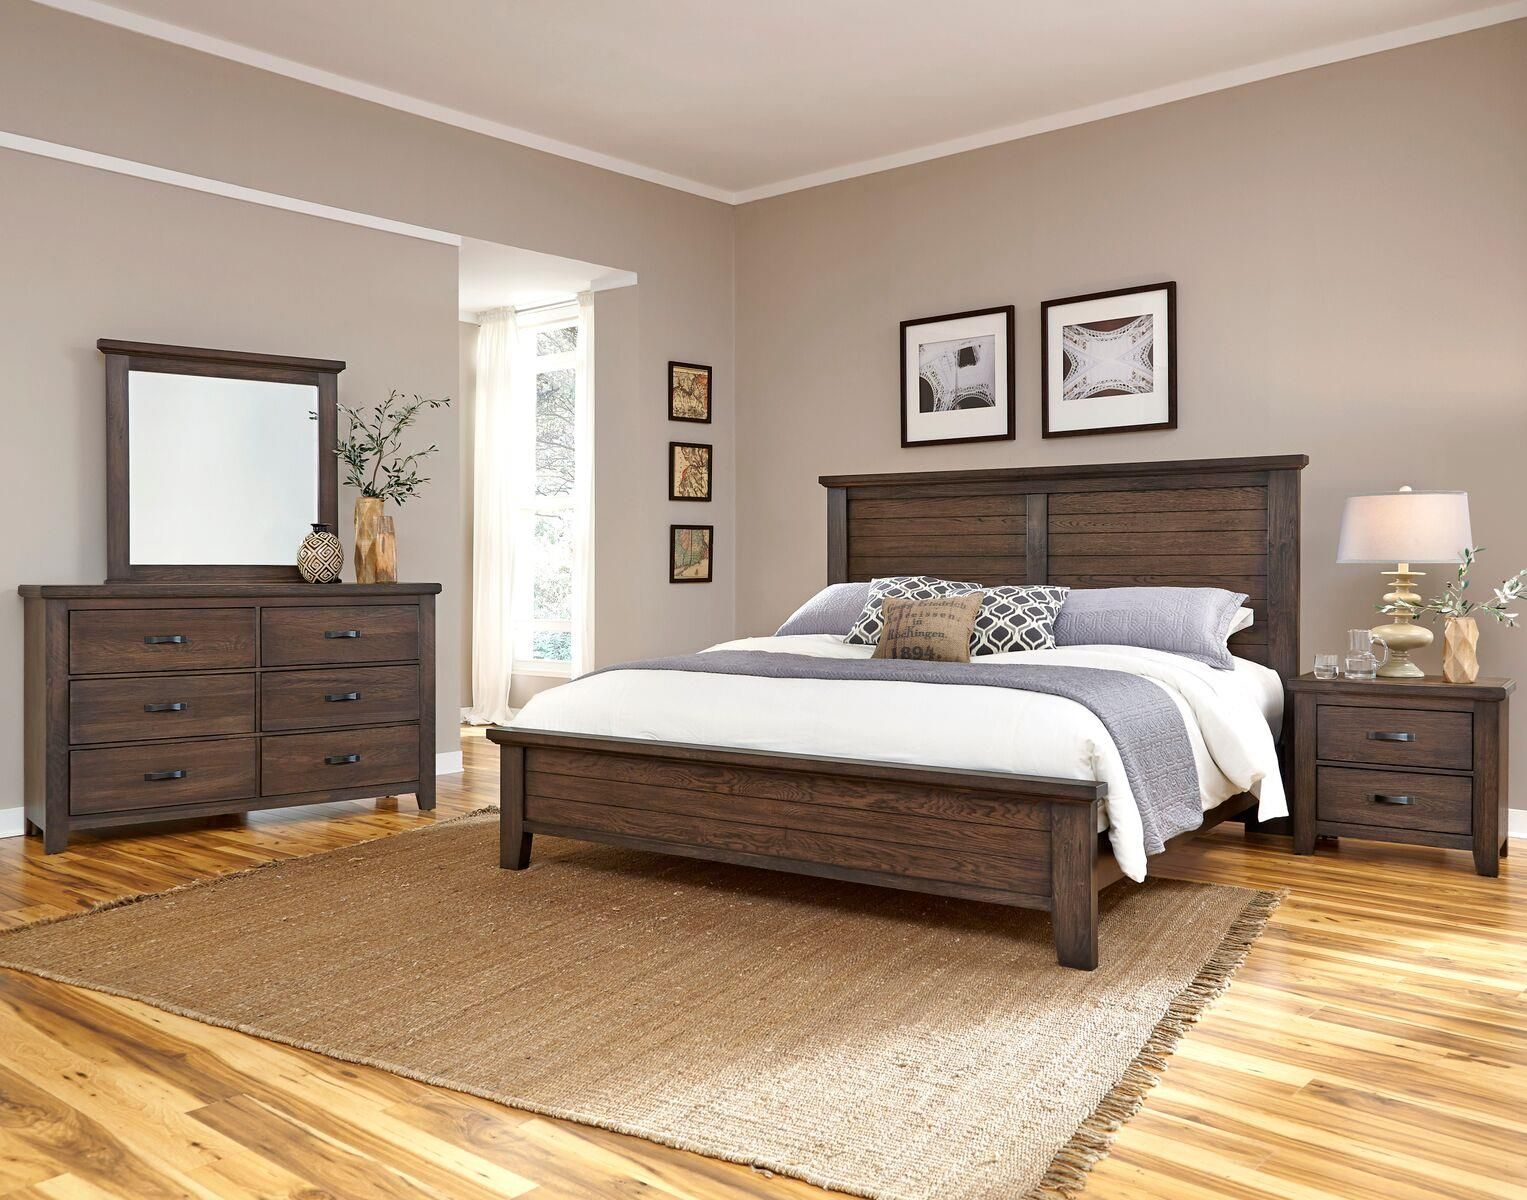 Gramercy park queen bedroom group by vaughan bassett for the home